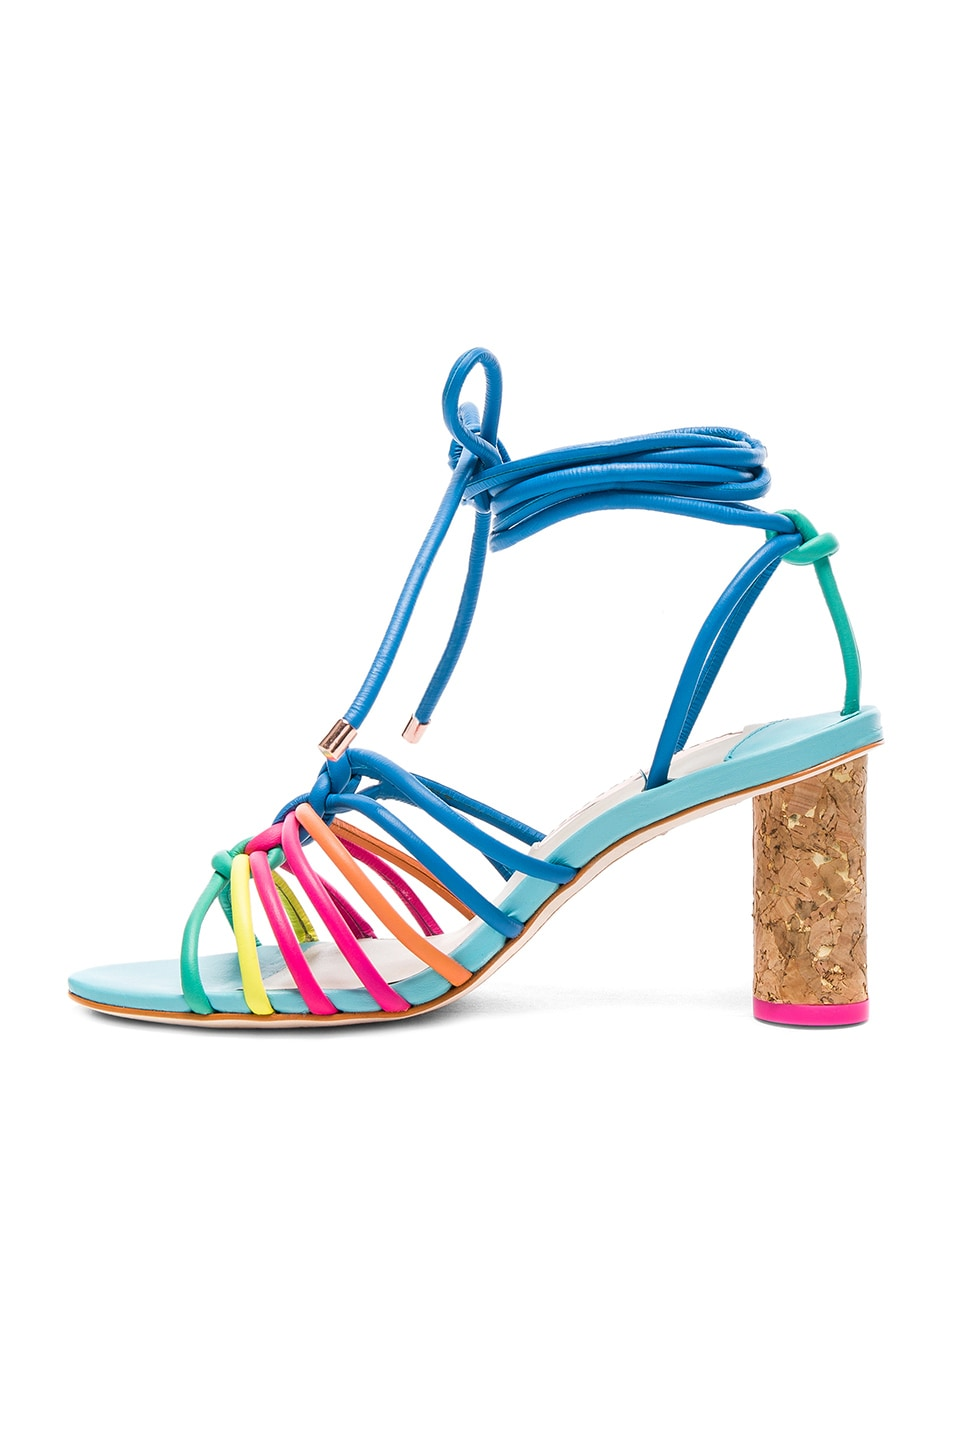 Image 5 of Sophia Webster Leather Copacabana Mid Sandals in Blue